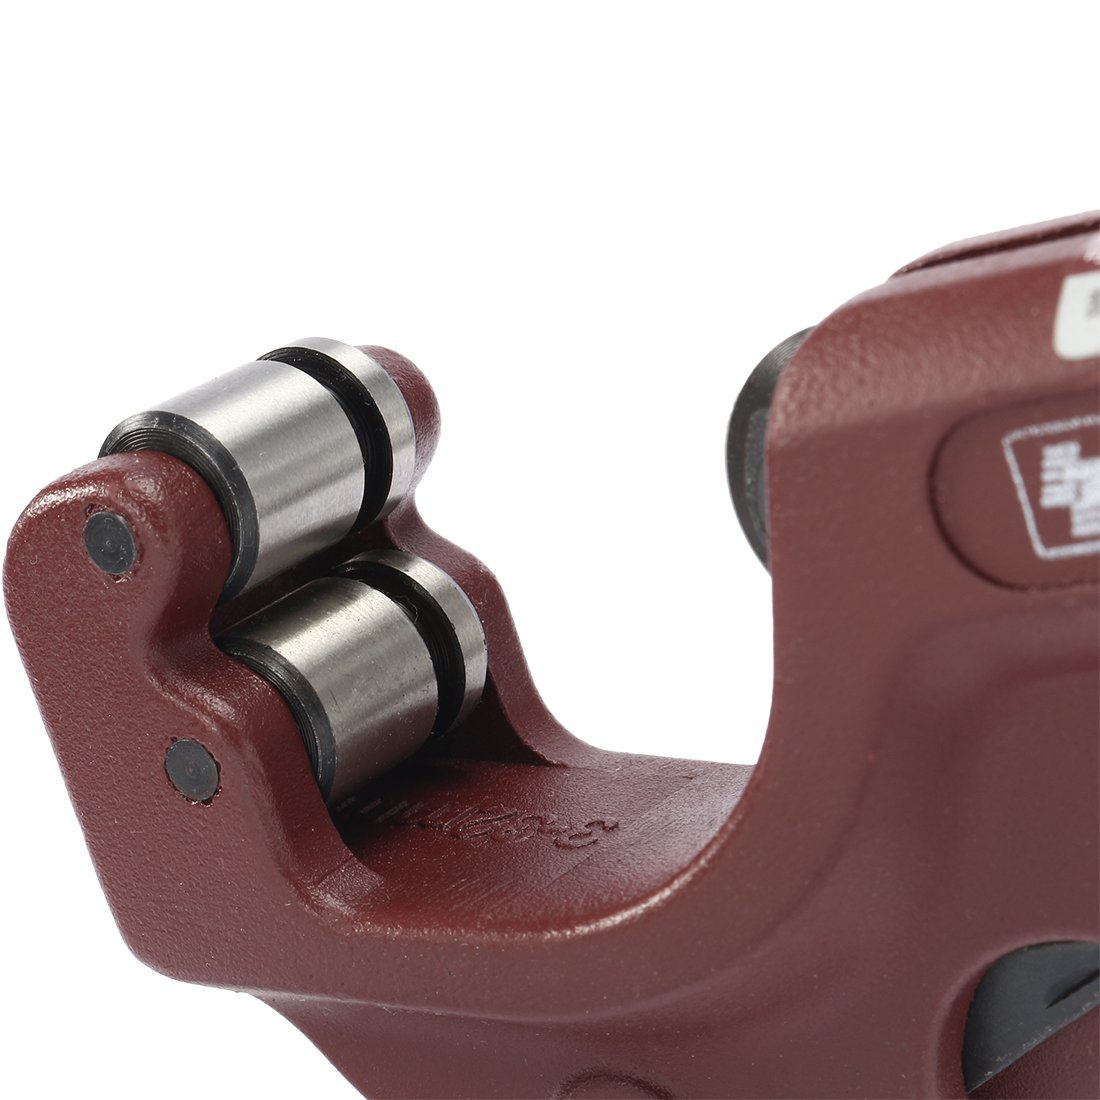 uxcell Tube Cutter, 1/8-inch to 1-1/4-inch Capacity, Copper Aluminum Plumbing Cutting by uxcell (Image #6)